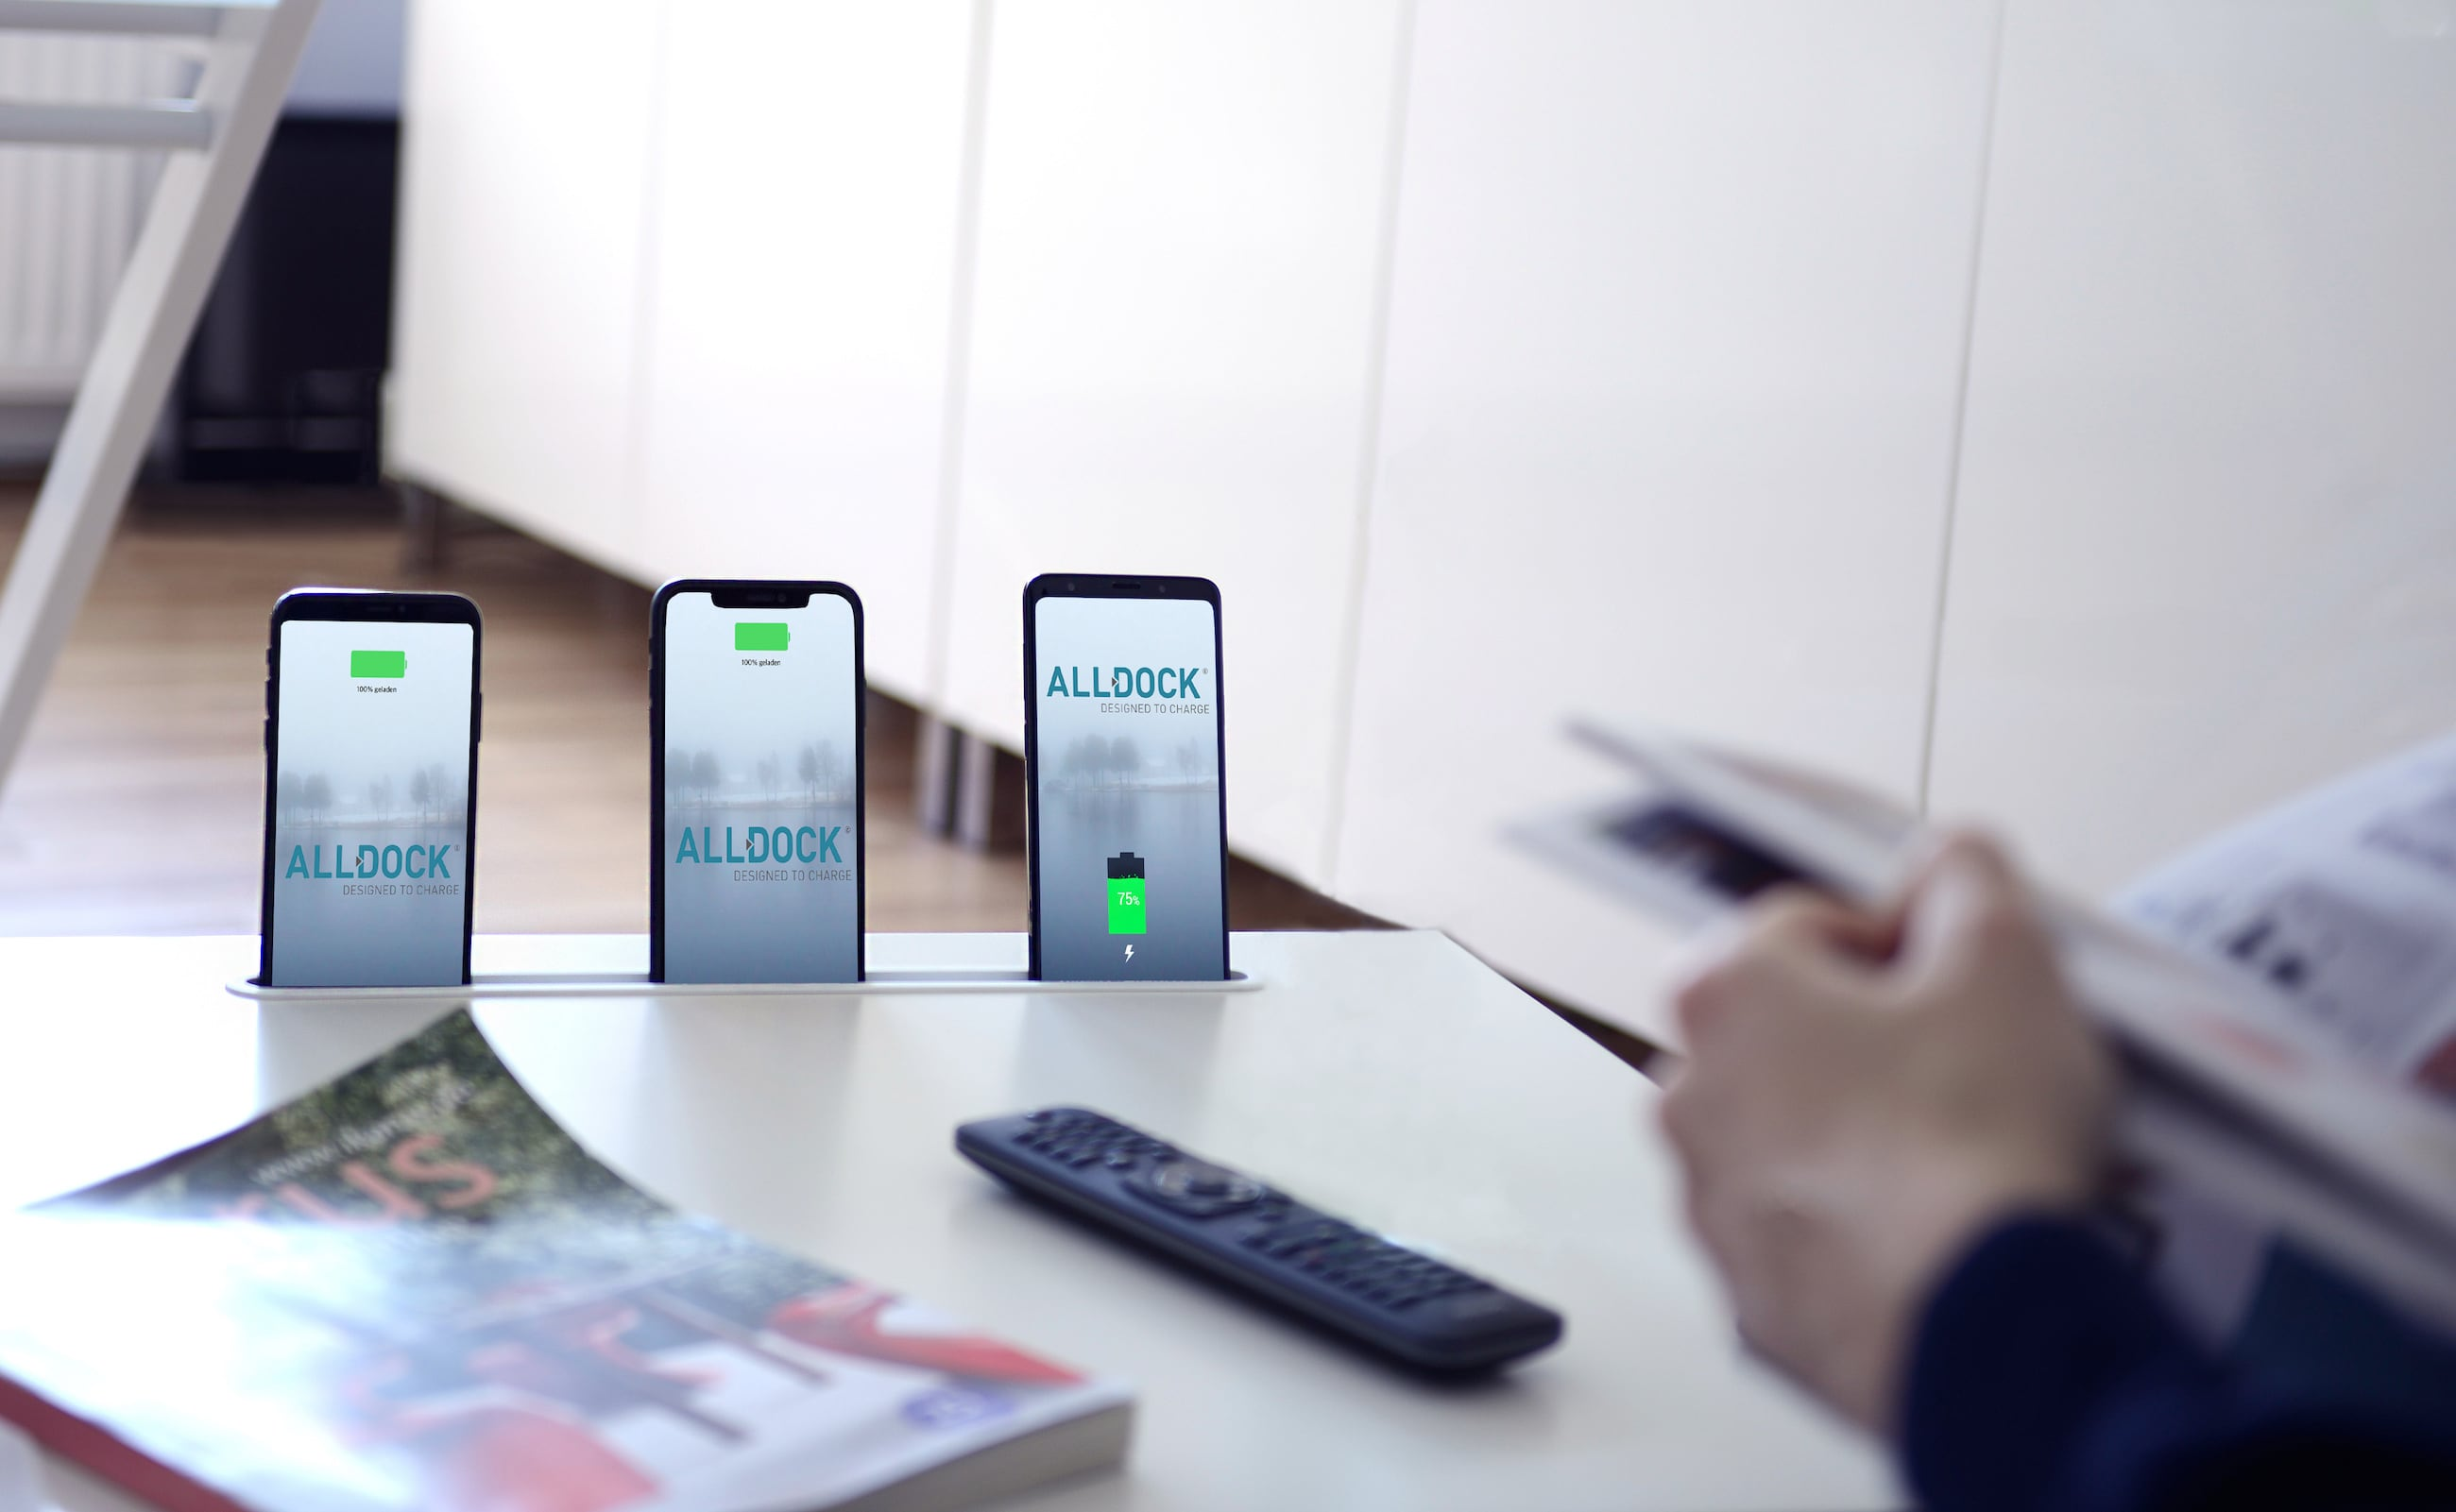 Alldock Integrate Built-In Charging Dock works with all common smartphones